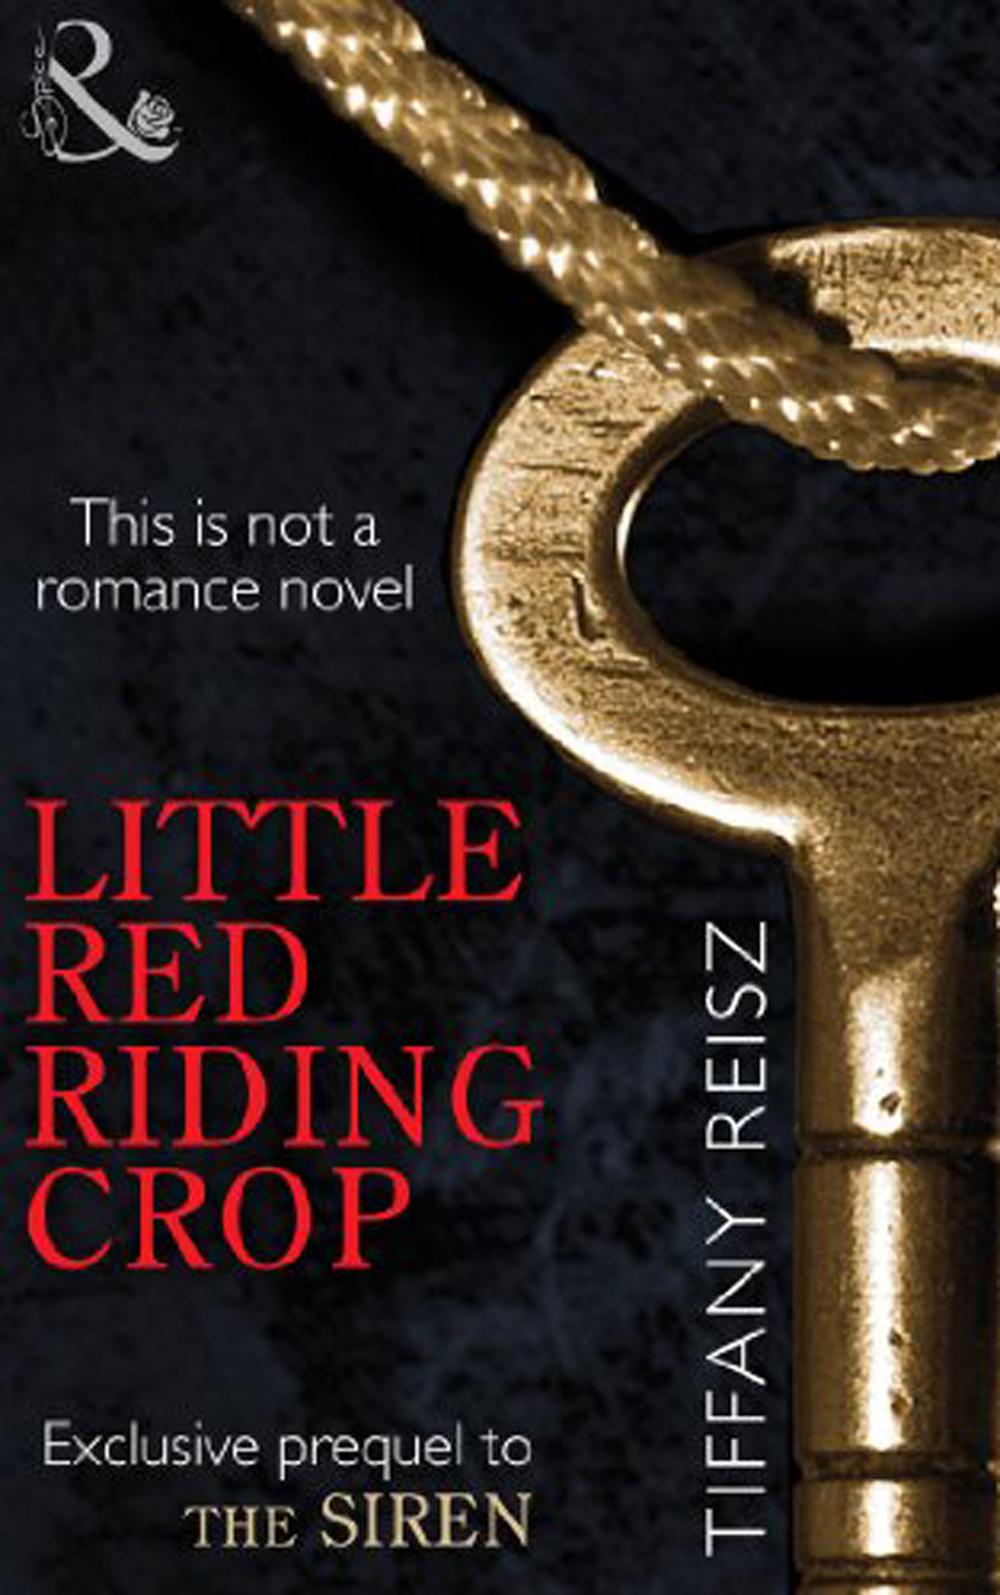 Little Red Riding Crop